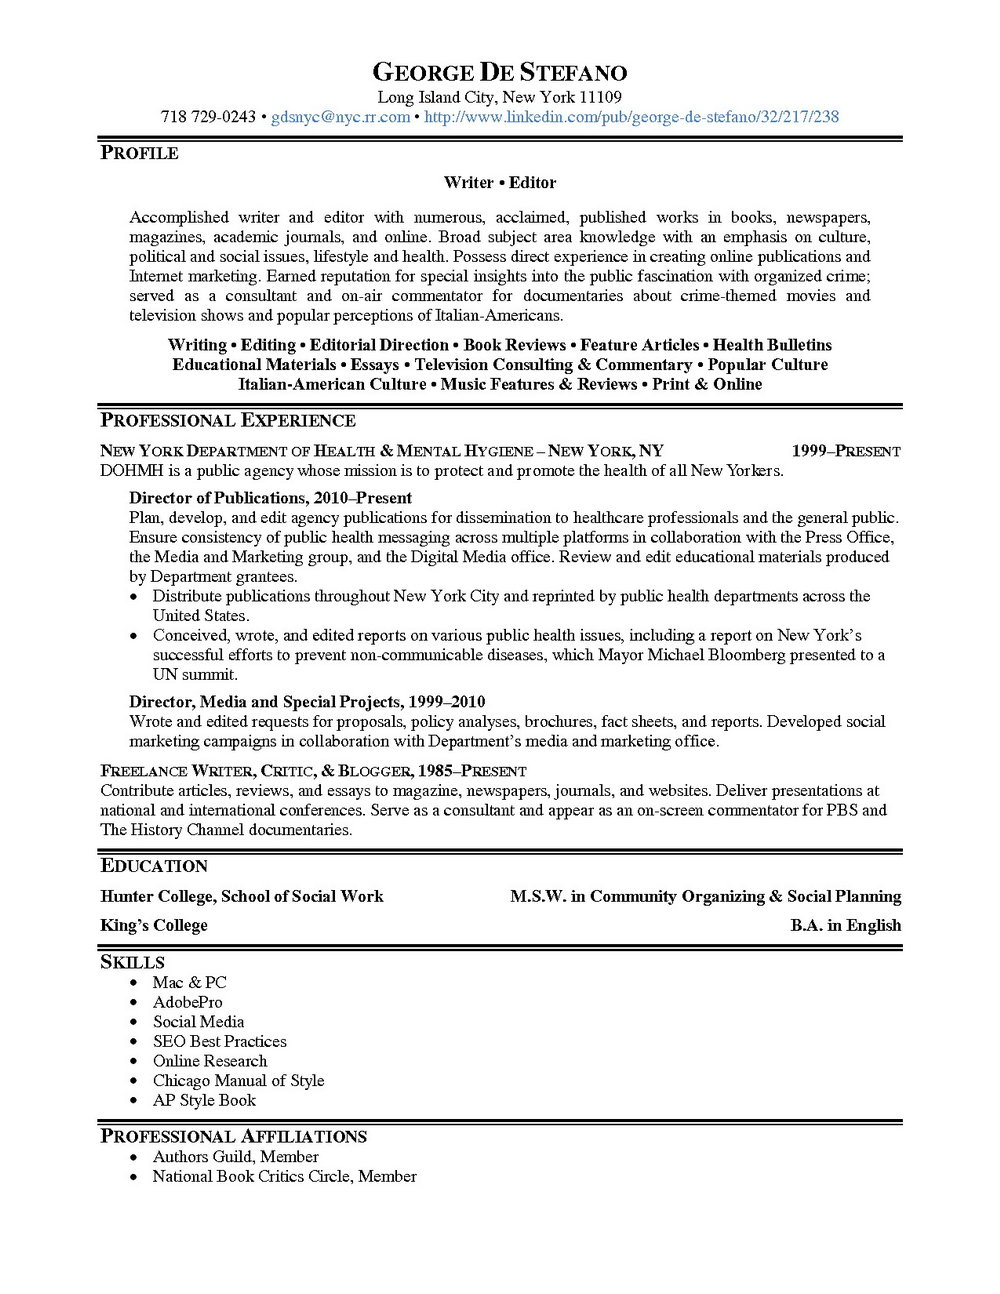 Resume Writing Services Long Island